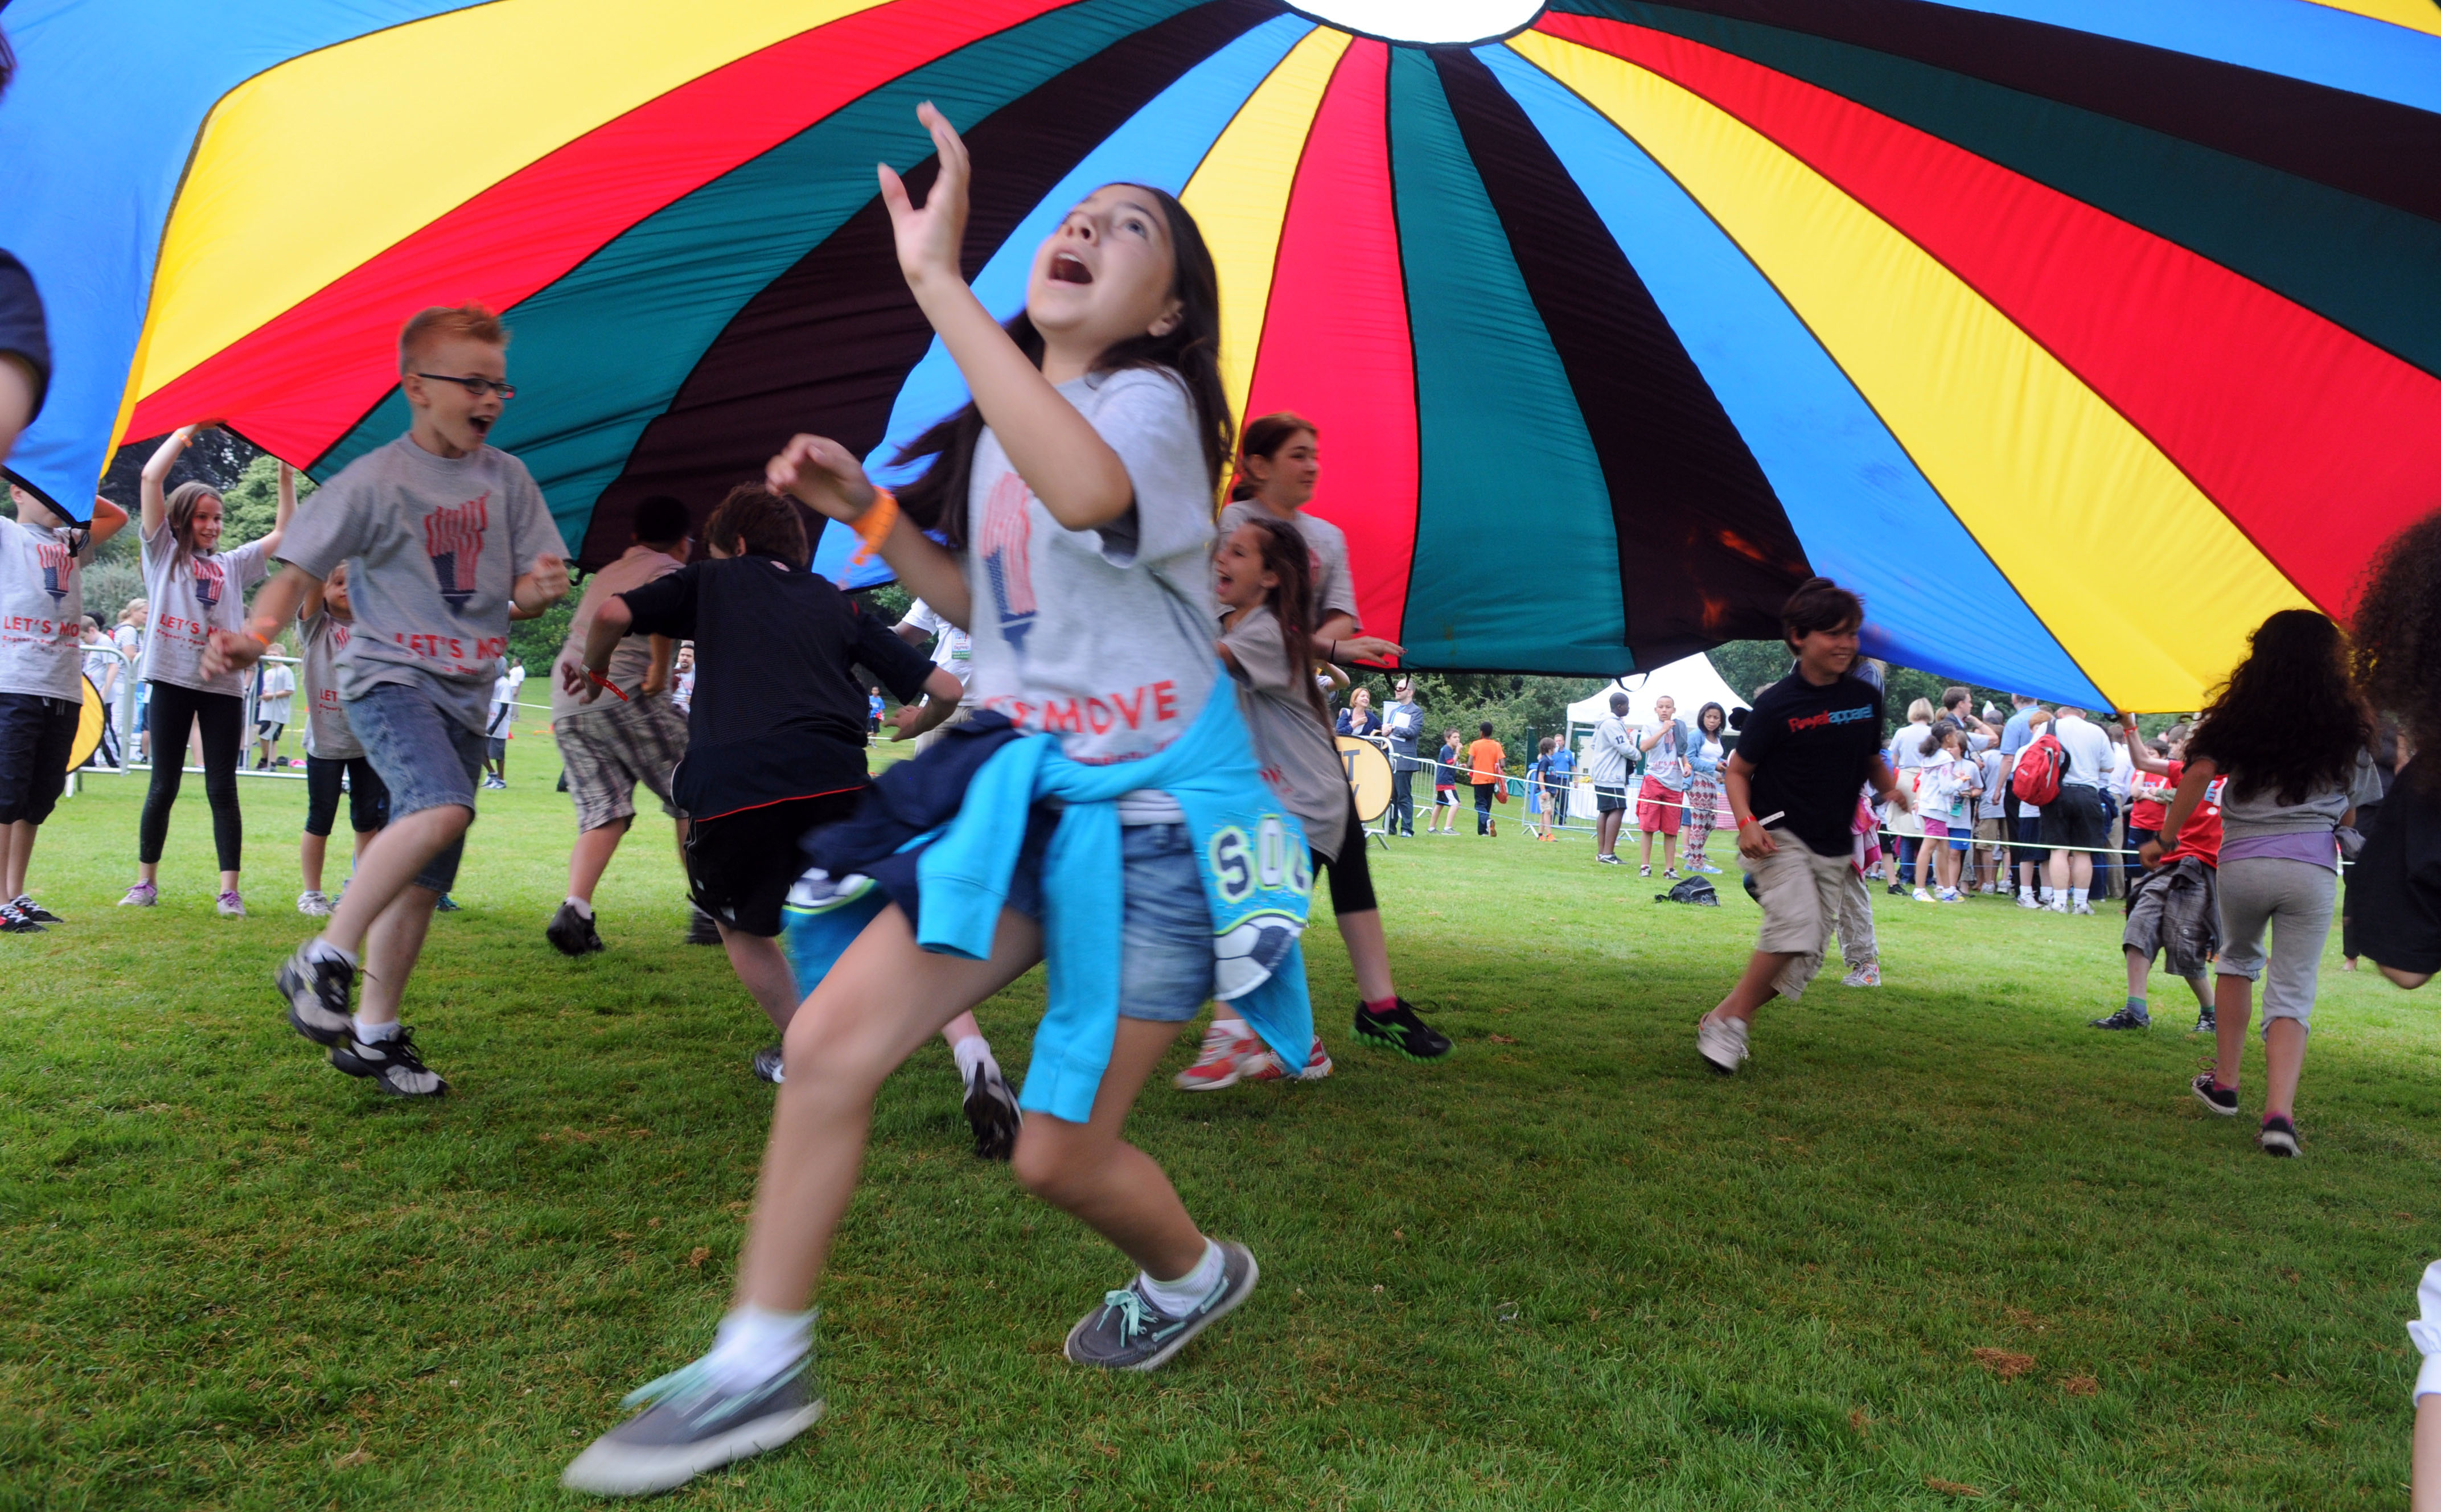 Children playing parachute game